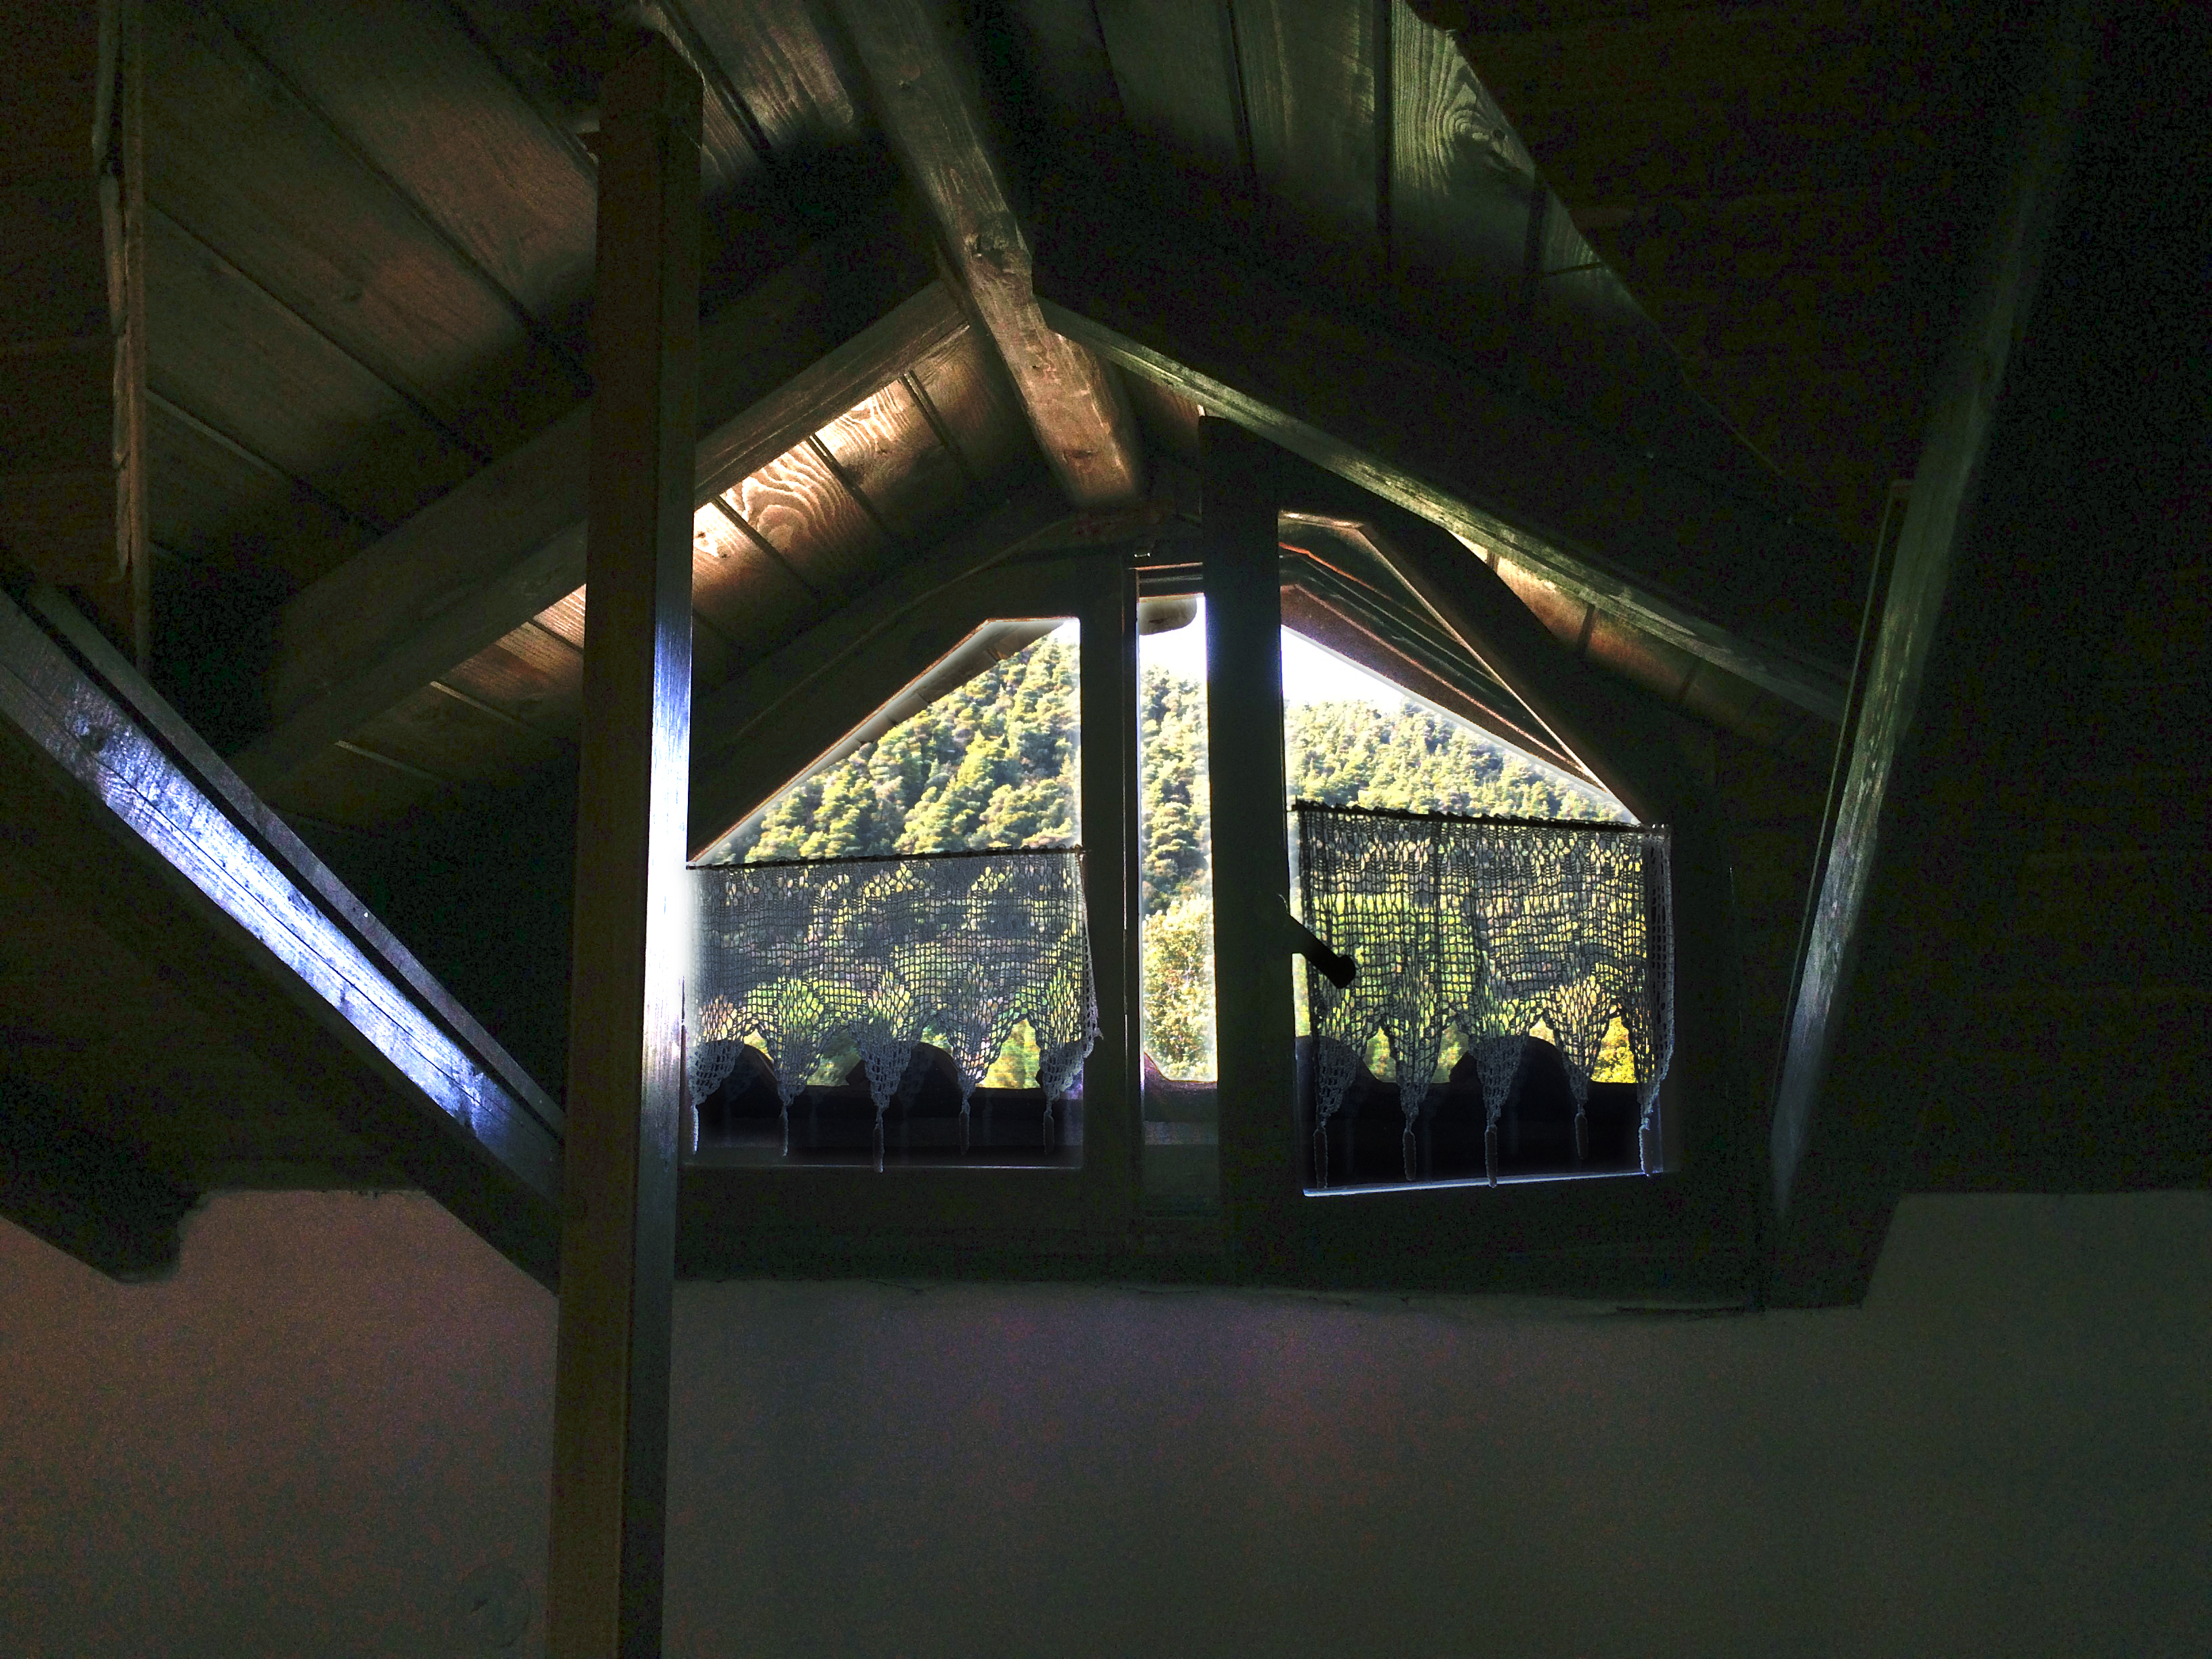 Mezzanine window to the forest